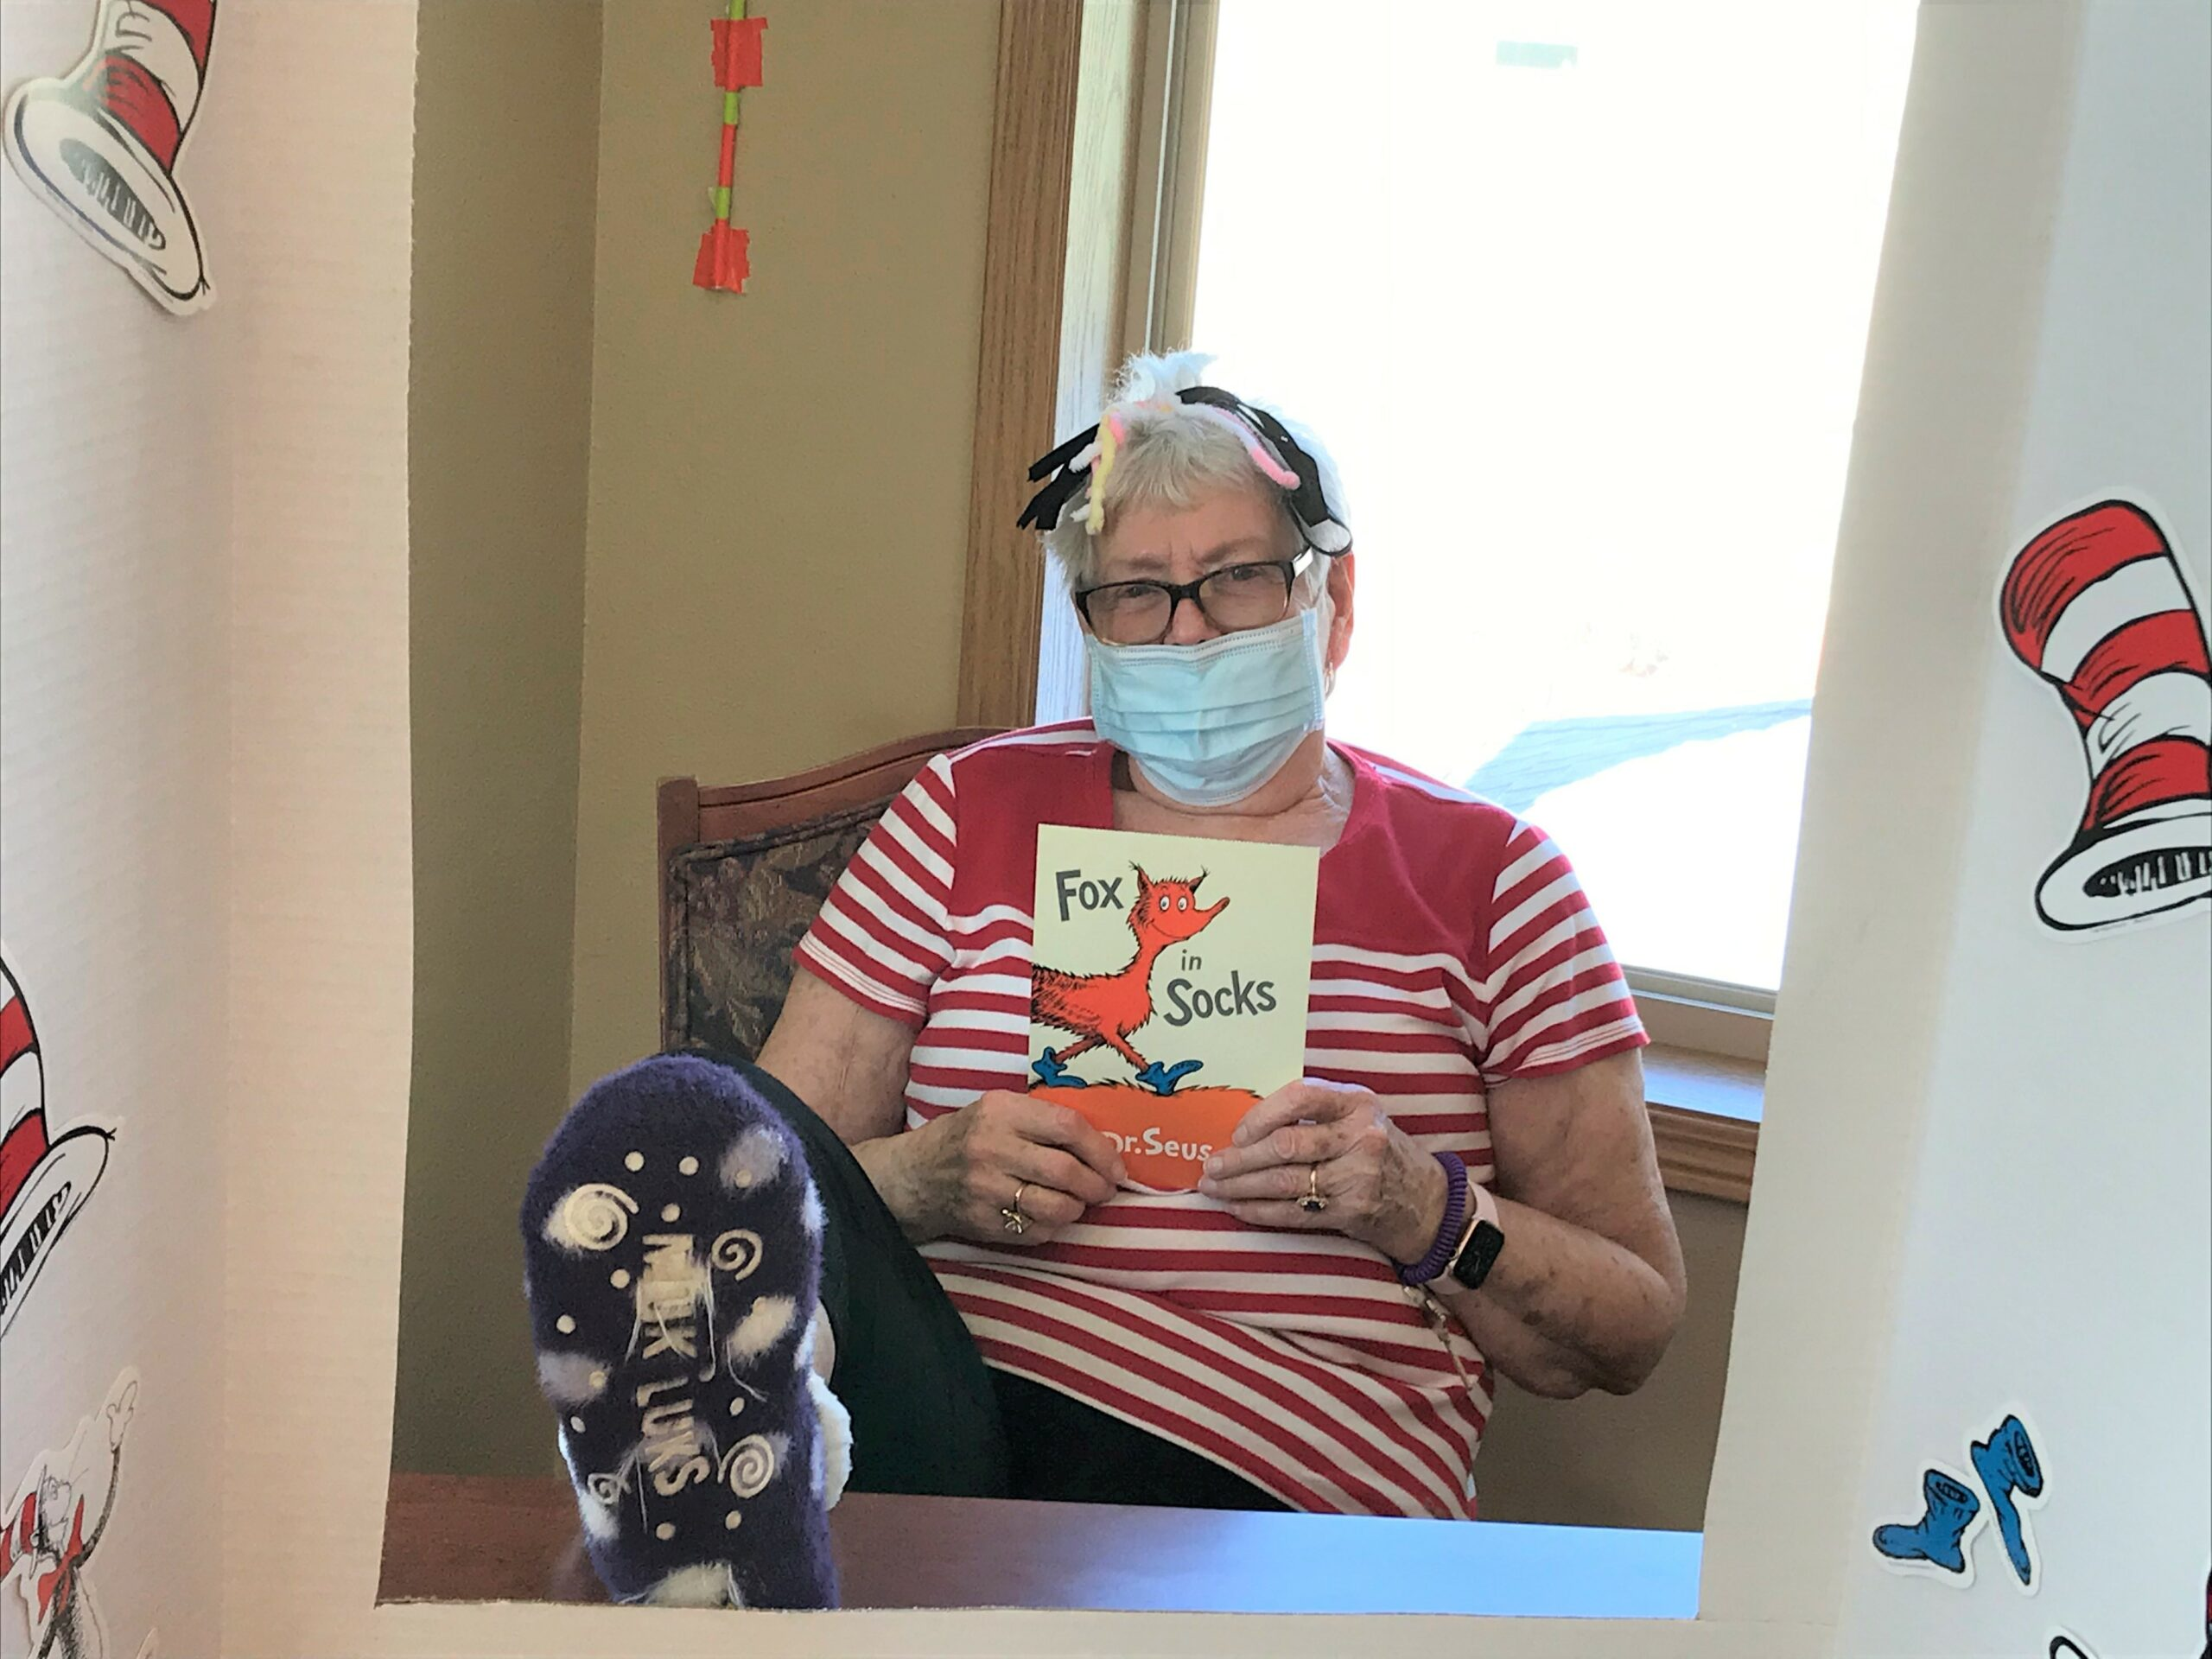 Marge having fun at Dr. Seuss Party!  Happy Birthday Dr. Seuss !!